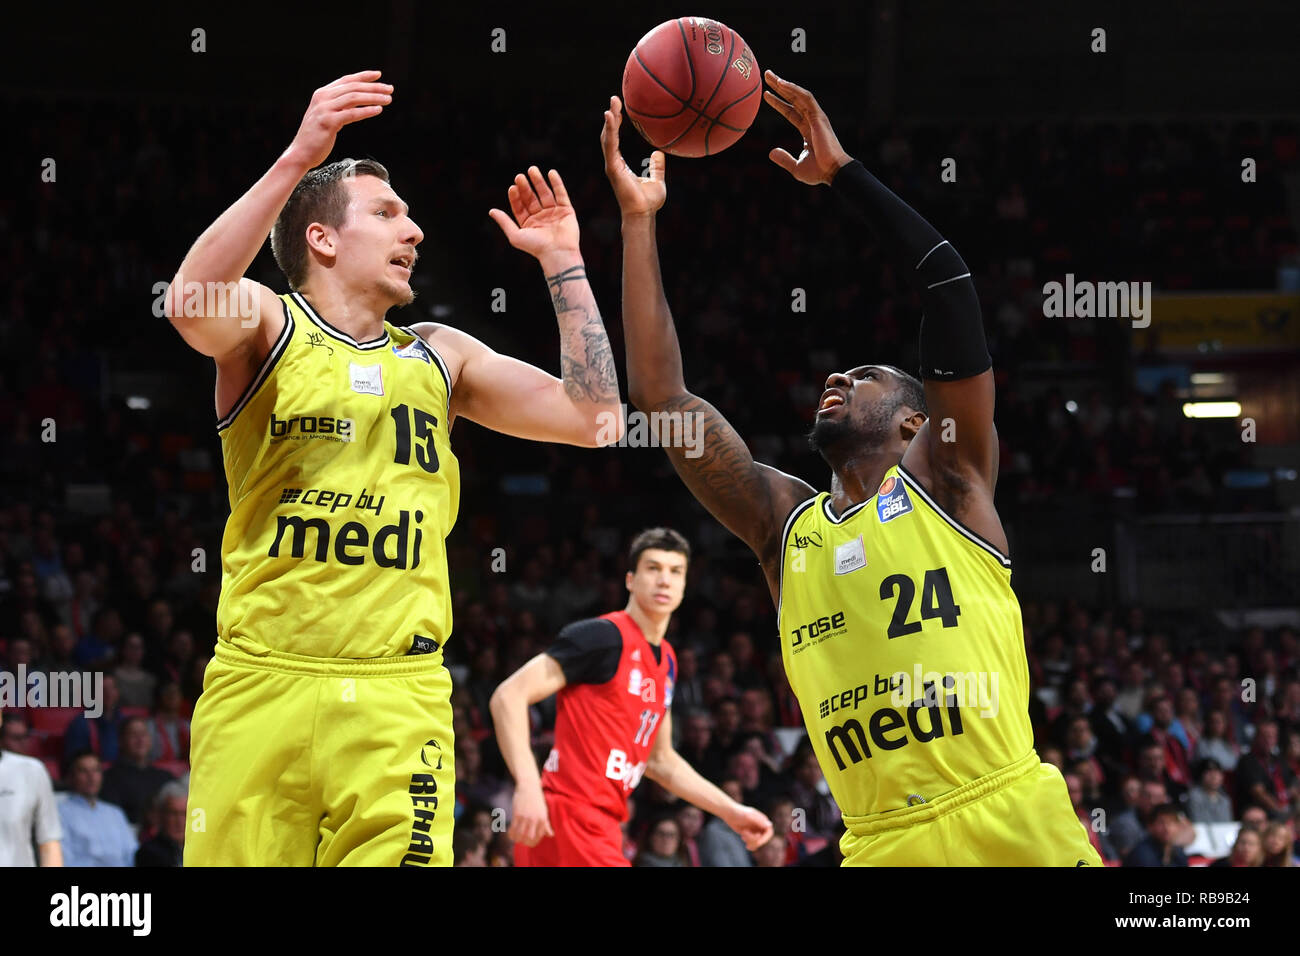 v.li:Gregor HR) OVATH, De Mon BROOKS (both medi) in the fight for the ball, action. Basketball 1.Bundesliga/Bayern Munich-medi Bayreuth on 06/01/2019. © Sven Simon Photo Agency GmbH & Co. Press Photo KG # Prinzess-Luise-Str. 41 # 45479 M uelheim/Ruhr # Tel. 0208/9413250 # Fax. 0208/9413260 # GLS Bank # Bank Code 430 609 67 # Kto. 4030 025 100 # IBAN DE75 4306 0967 4030 0251 00 # BIC GENODEM1GLS # www.svensimon.net ## -video ## Basketball 1.Bundesliga/FC Bayern Munich-Telekom Baskets Bonn on 21.10.2018, AUDIDOM E. | usage worldwide - Stock Image